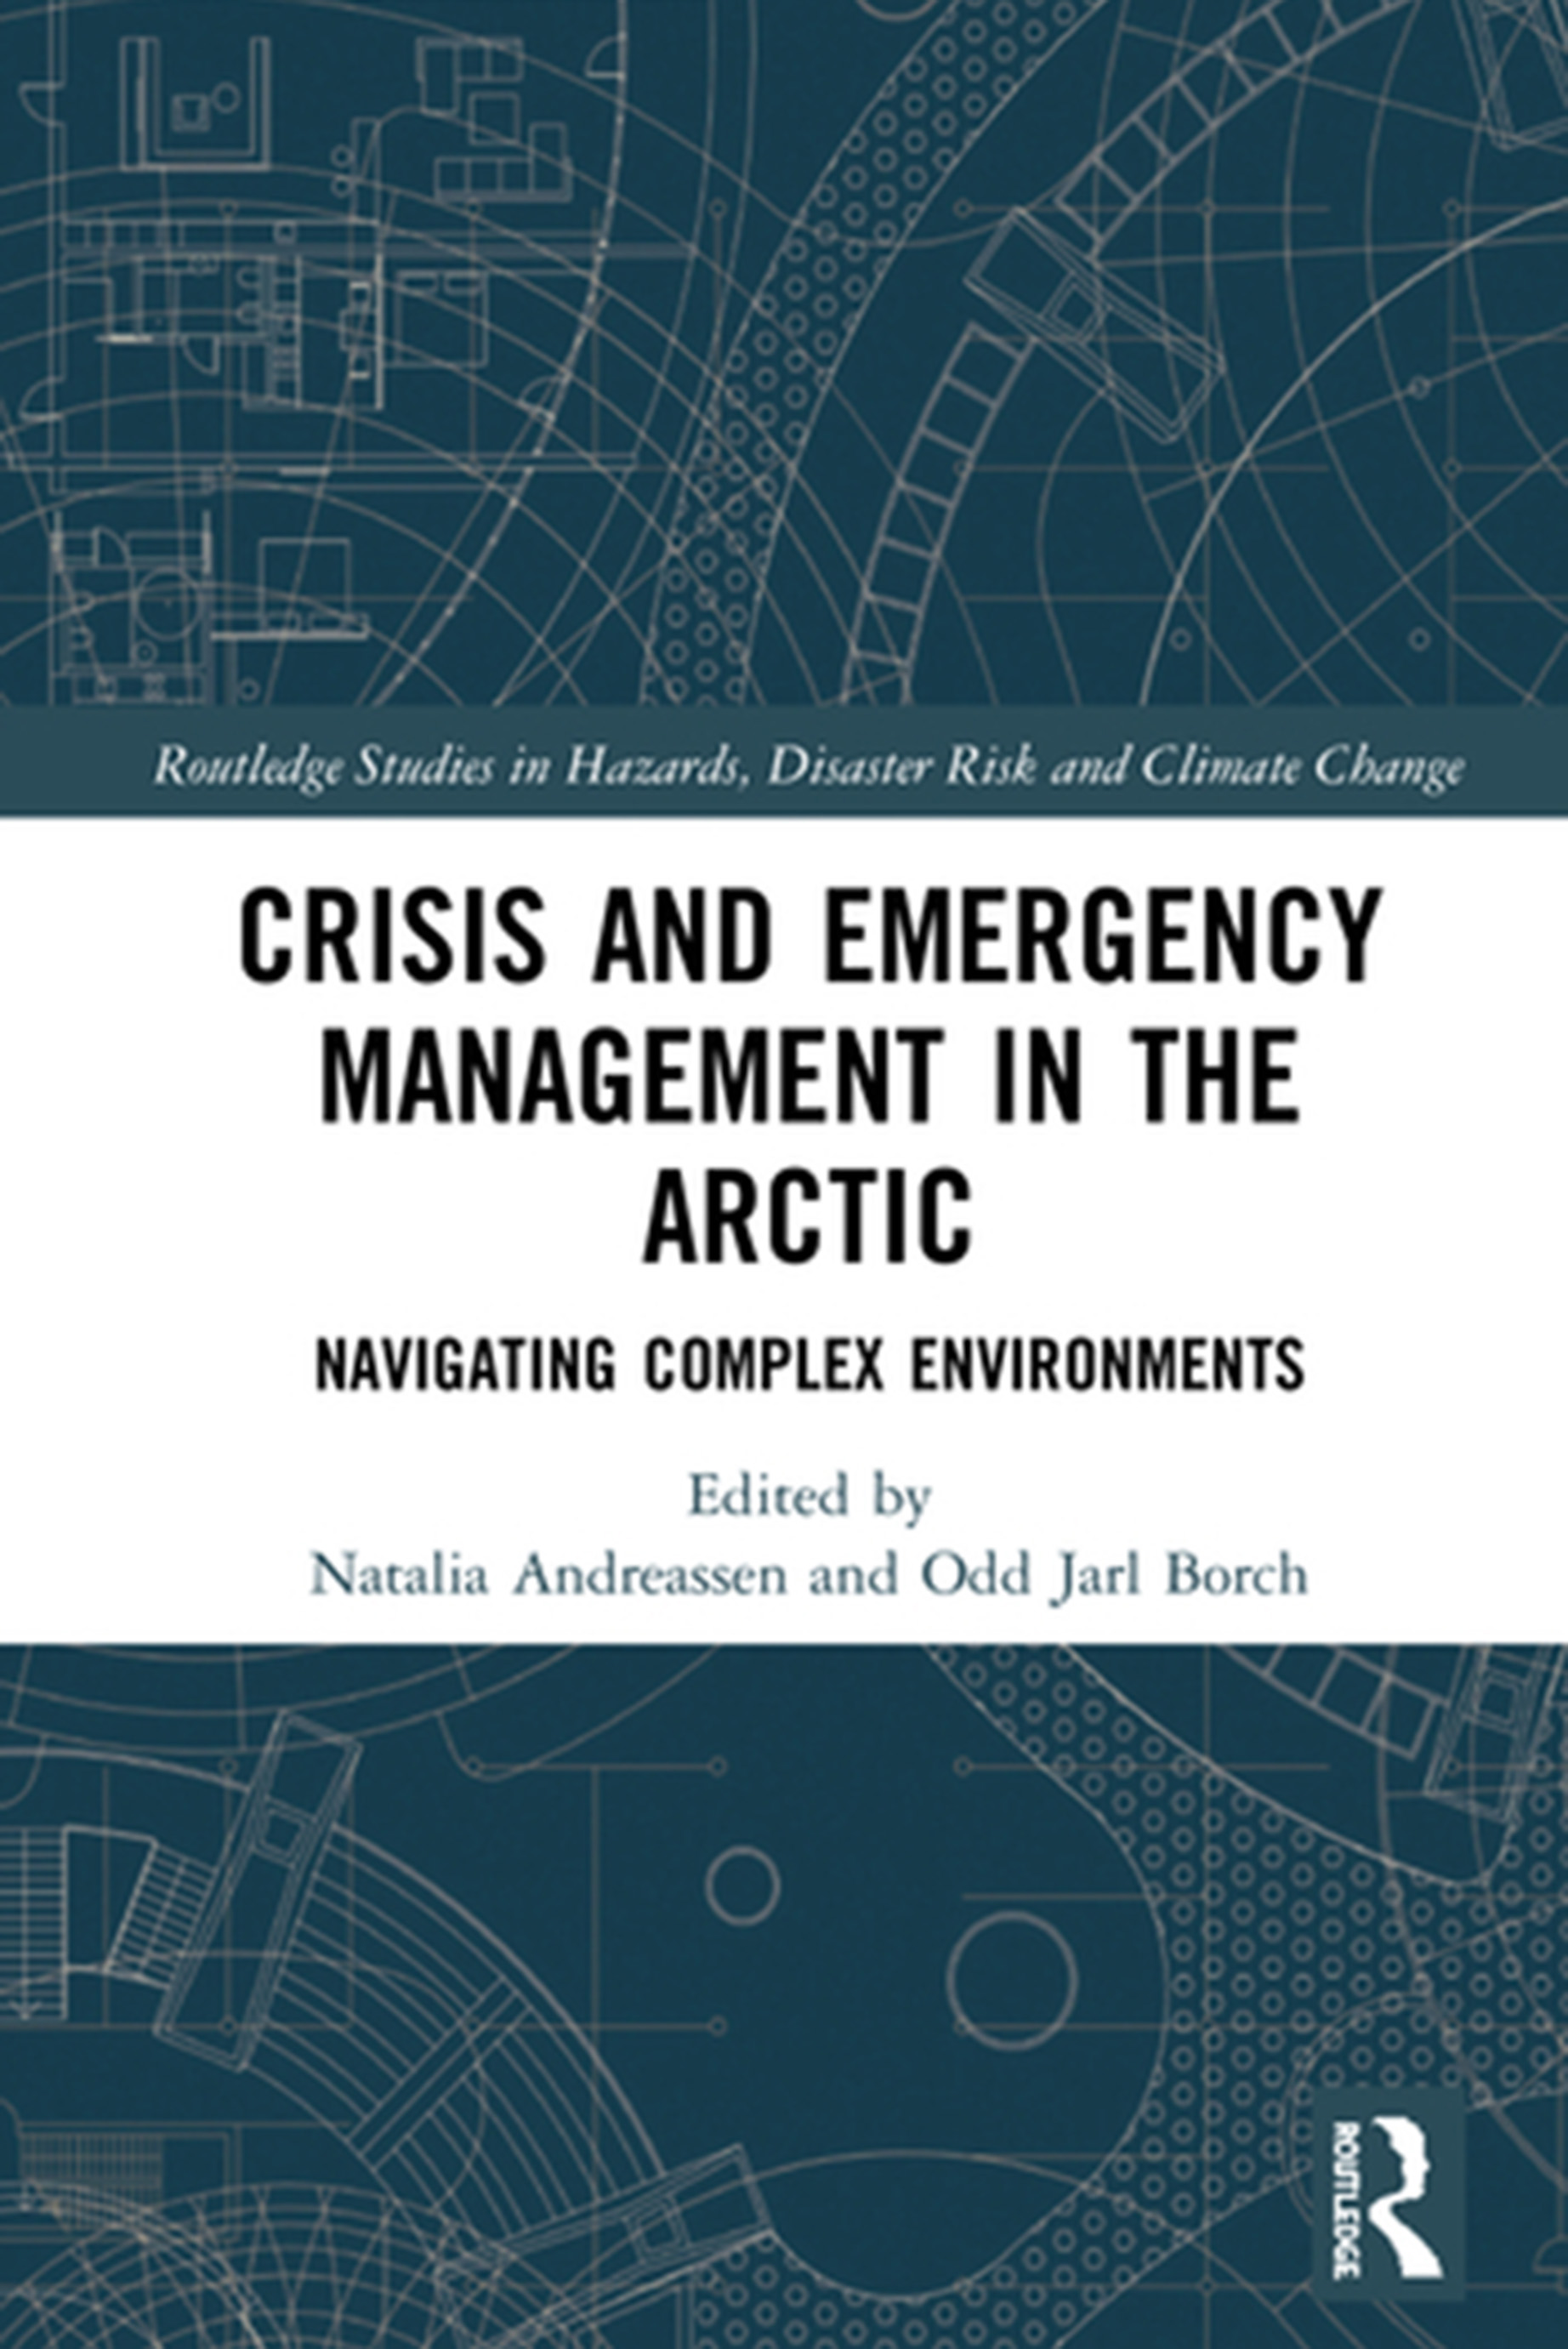 Perspectives on Future Research within Crisis and Emergency Management in the Arctic